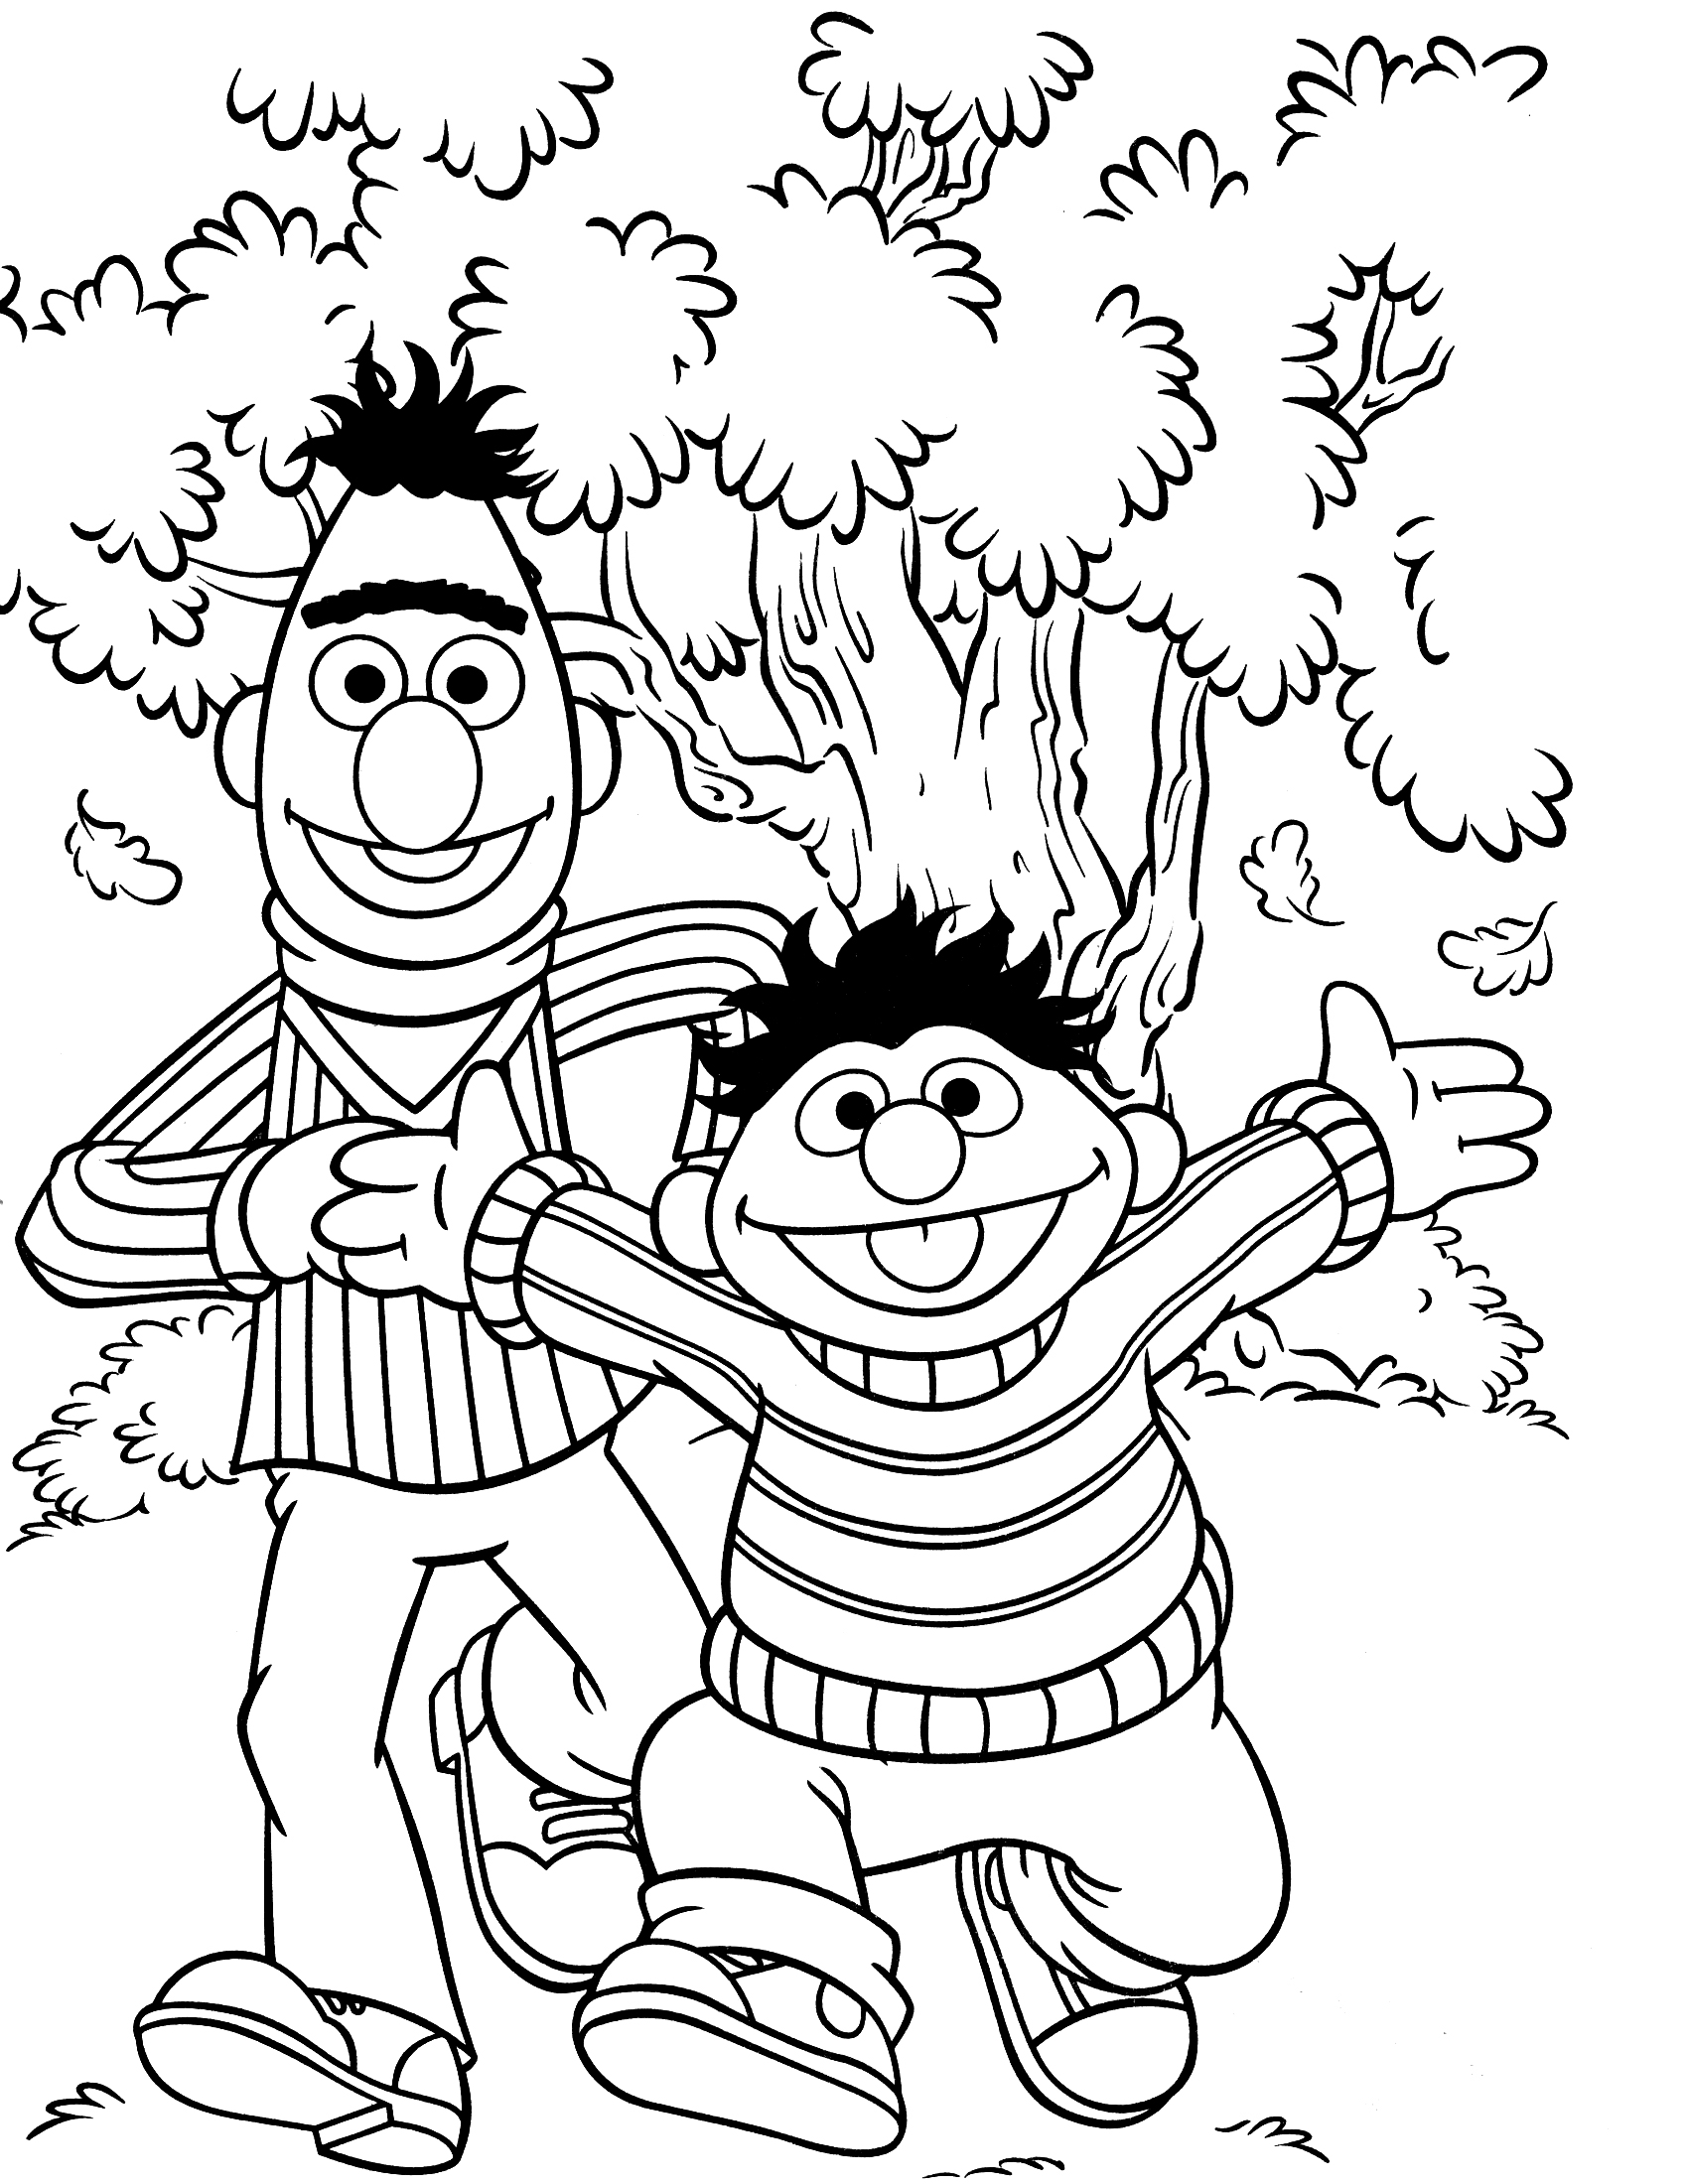 1700x2200 Amazing Hmgfue In Sesame Street Coloring Pages On With Hd